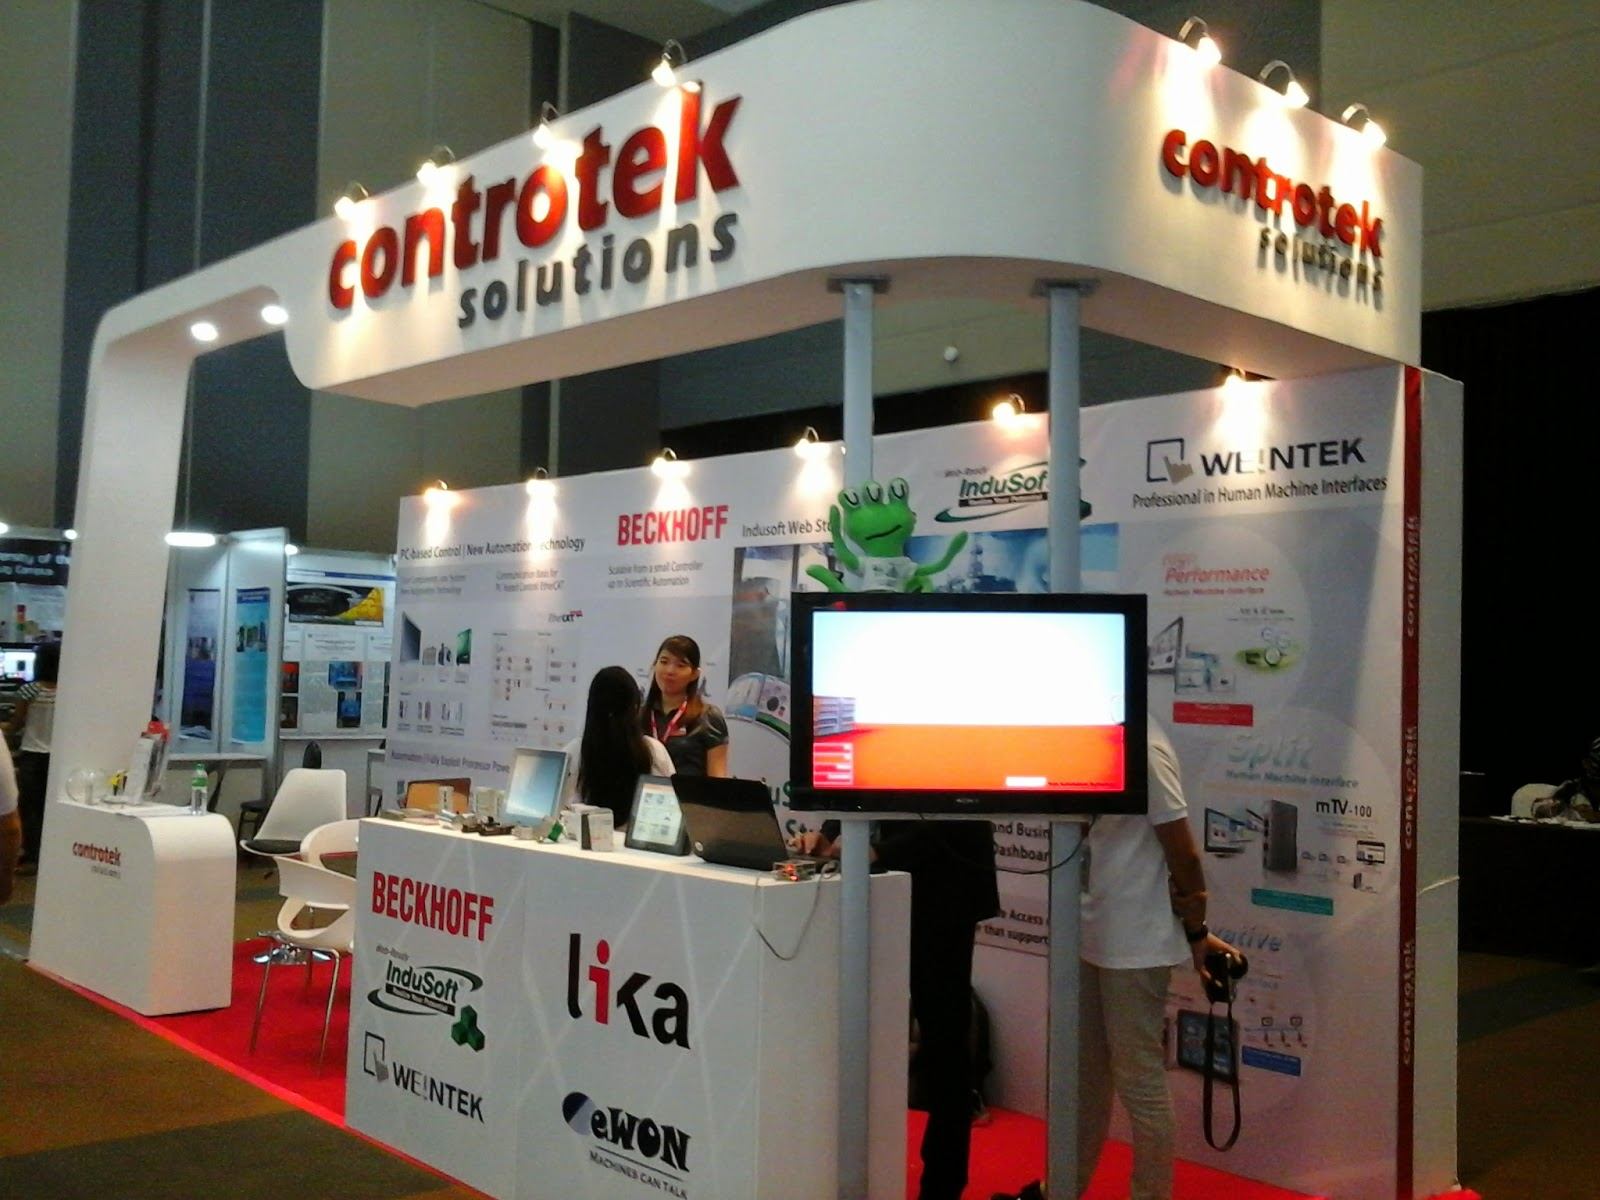 Controtek Solutions Exhibit Booth